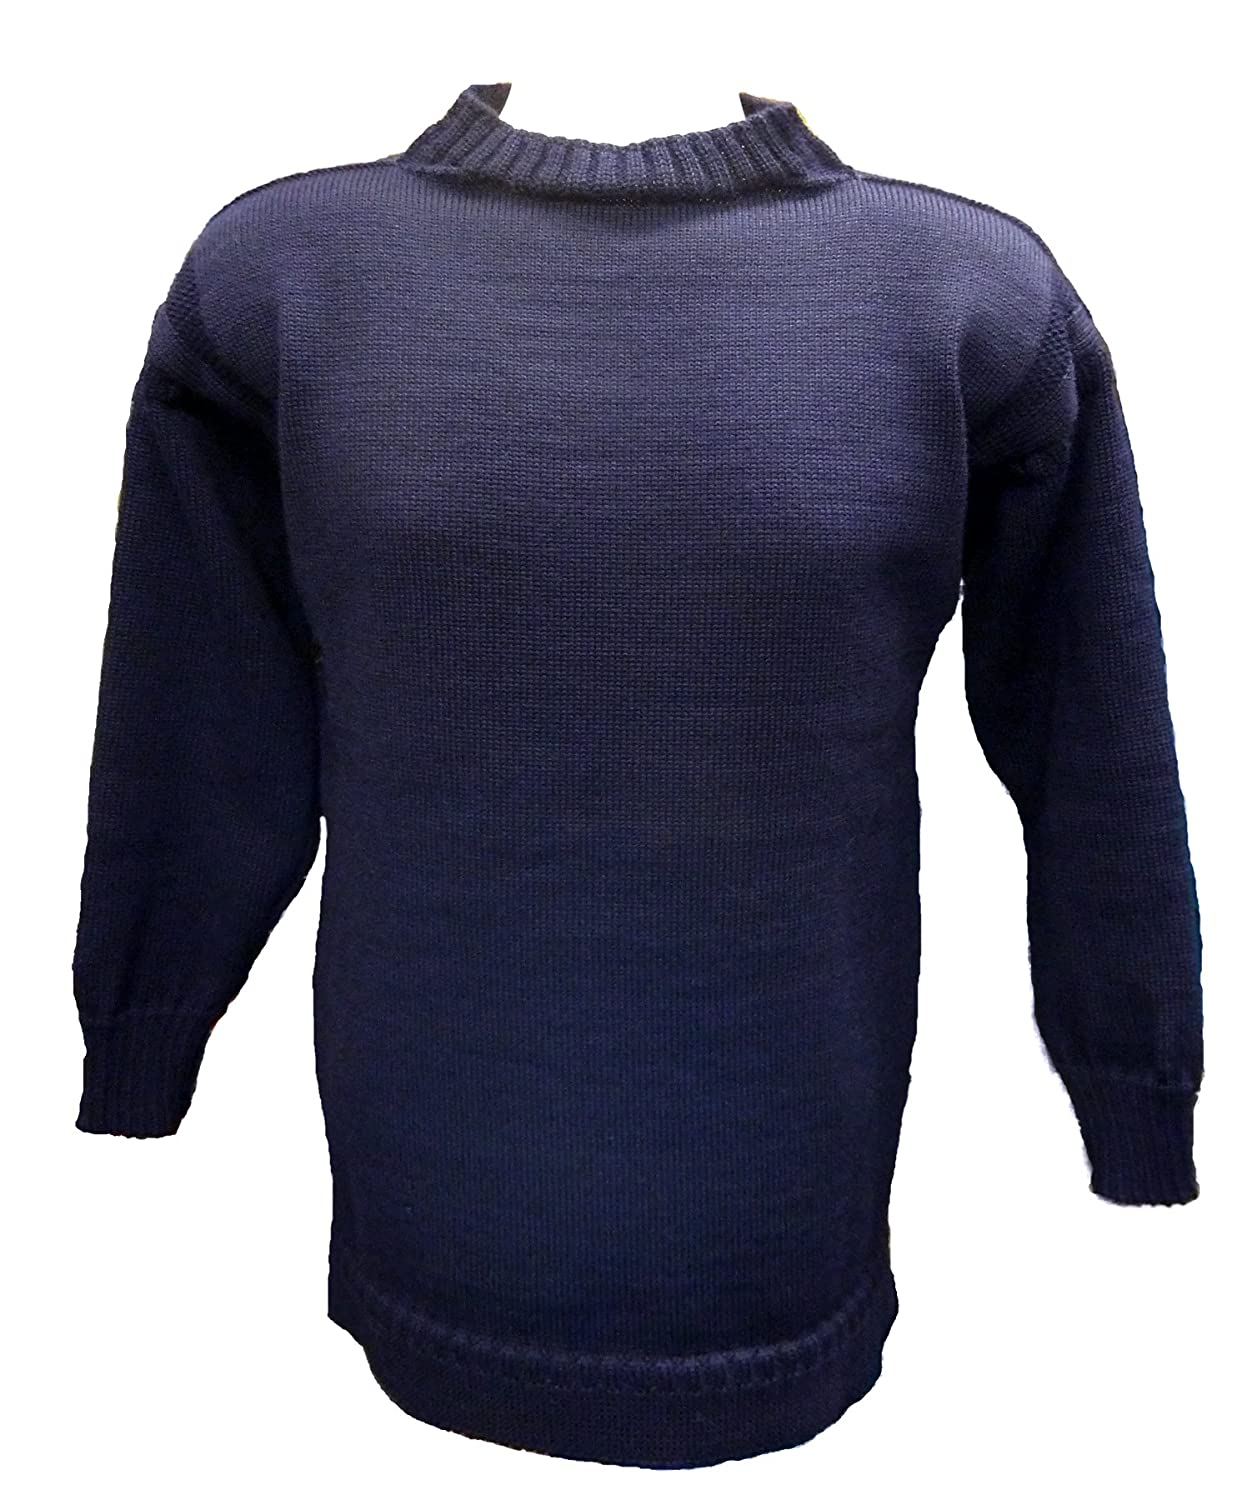 Co colour care guernsey - Genuine Traditional Guernsey Jumper Navy